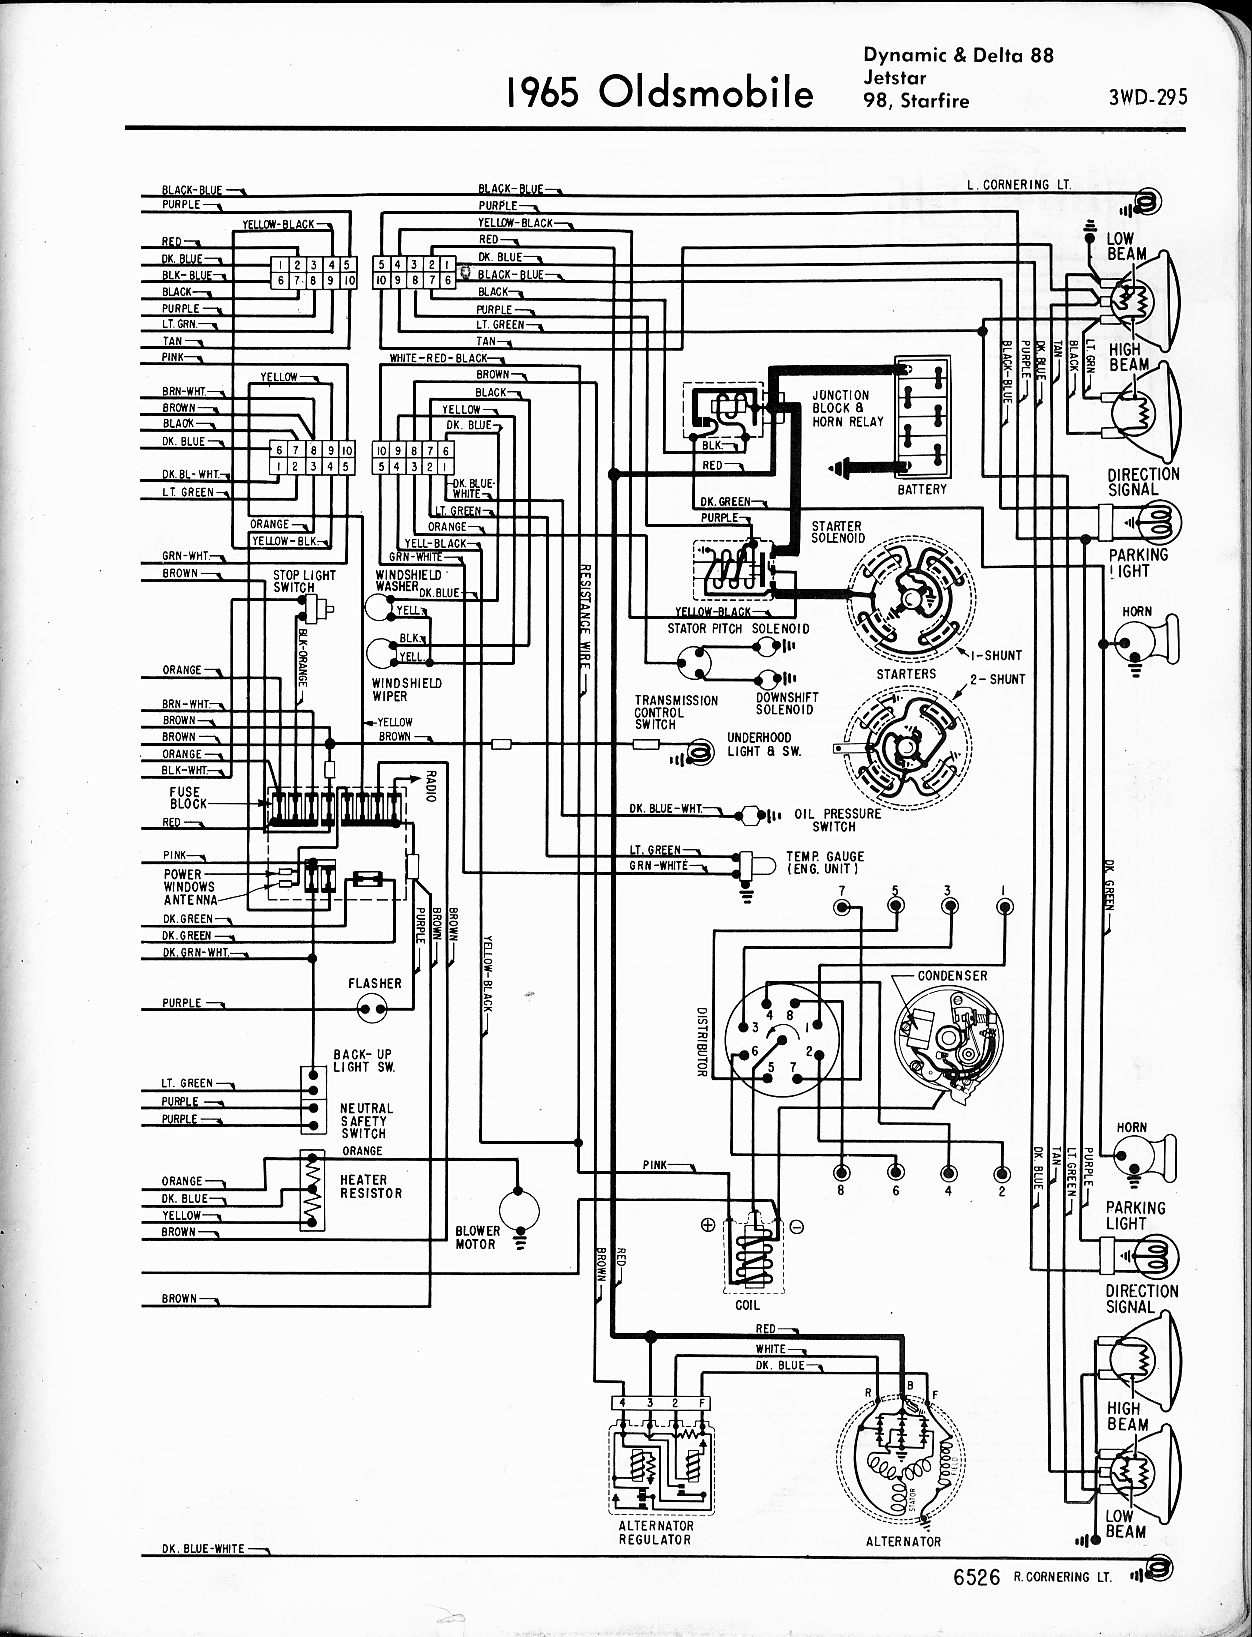 MWire5765 295 oldsmobile wiring diagrams the old car manual project old car manual project wiring diagrams at soozxer.org